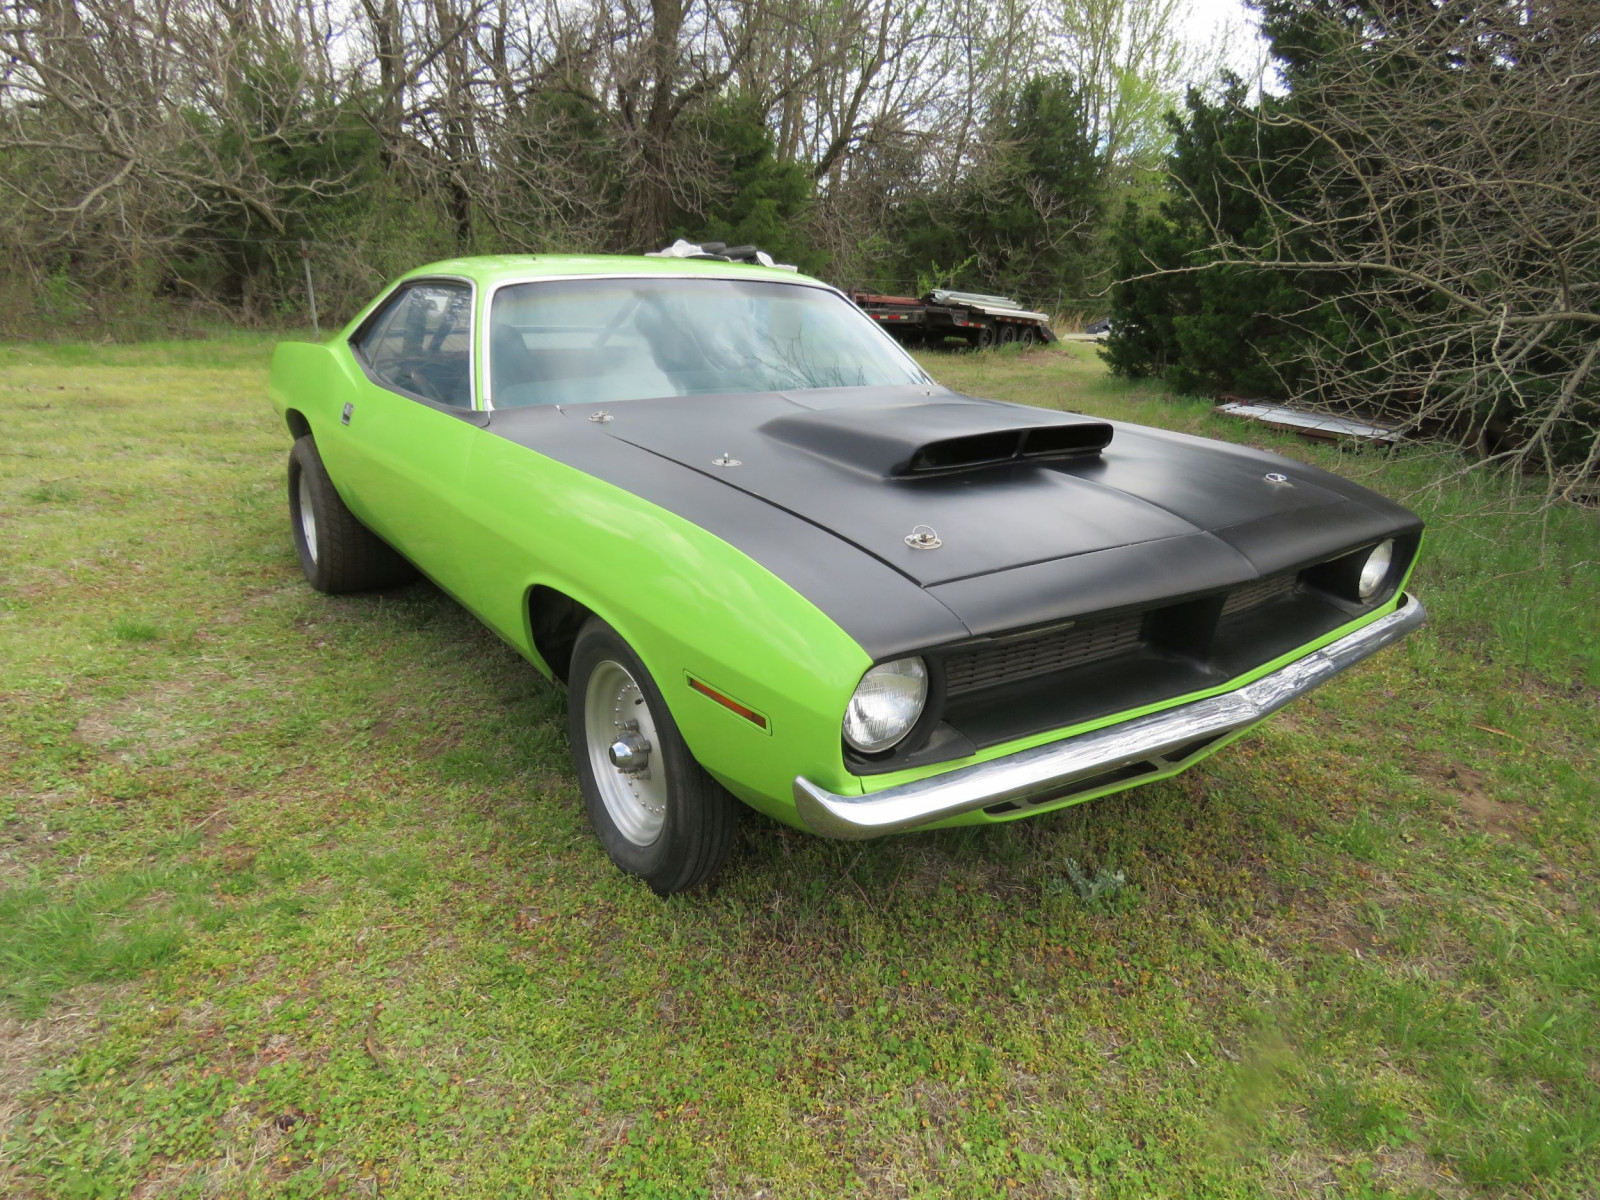 1970 PLYMOUTH CUDA DRAG CAR - Image 1